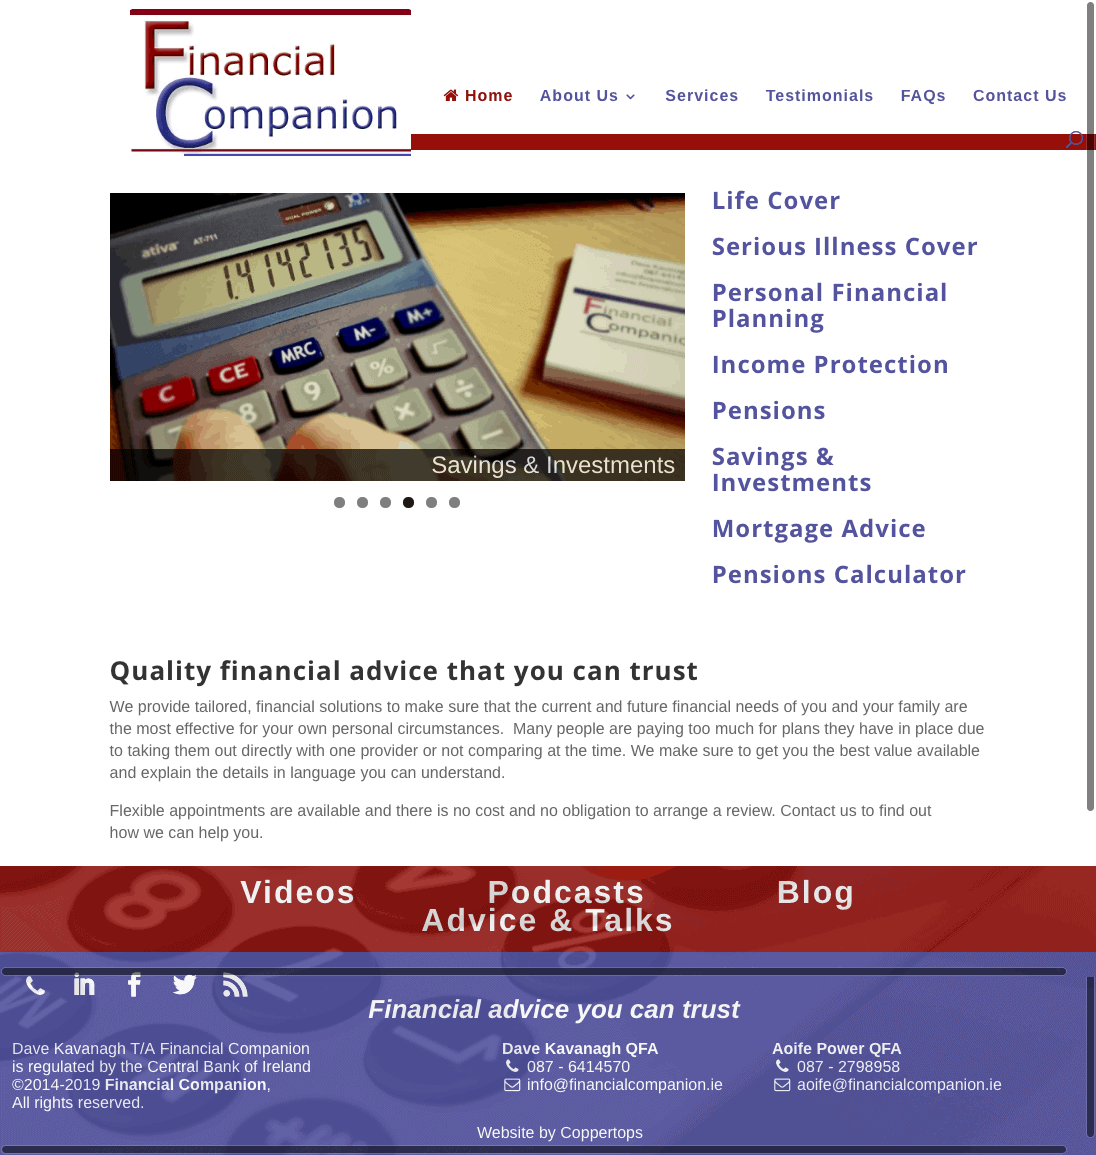 Financial Companion Financial Advisor web design